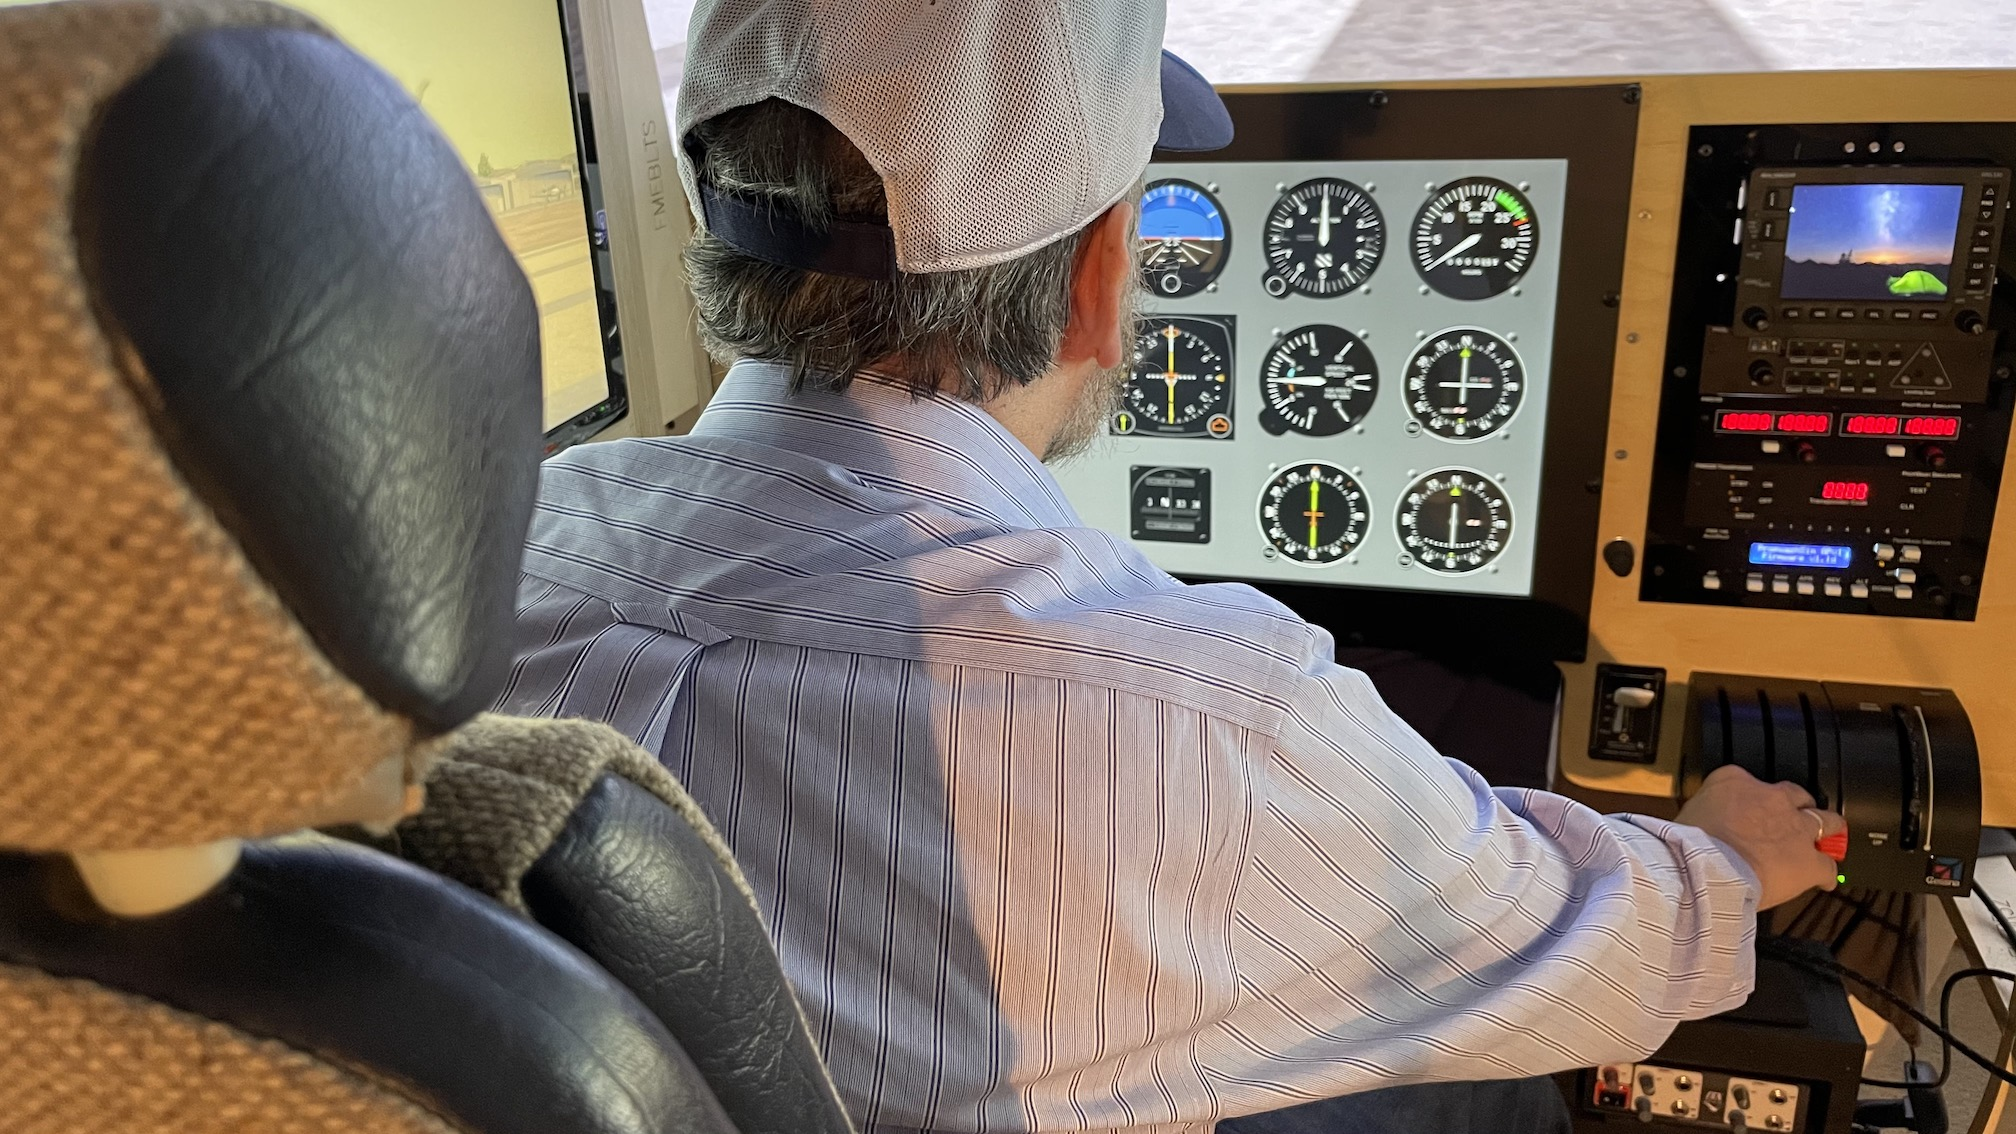 Instructor view with pilot 1